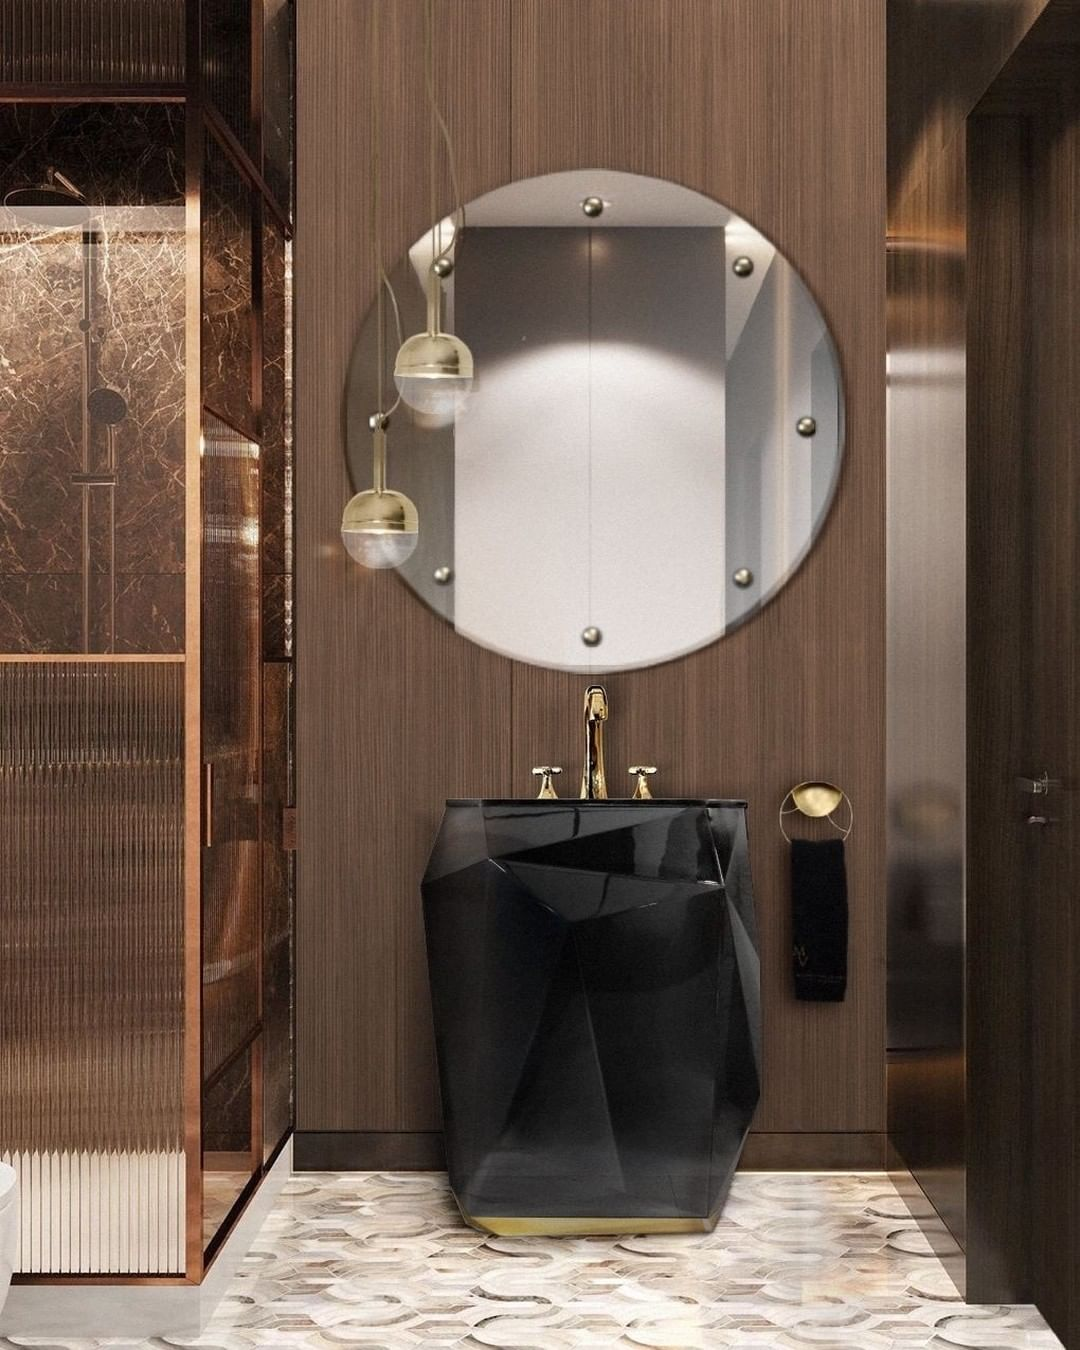 Small bathroom with luxury items   small bathroom Small Bathroom Designs: How to turn them into Luxurious and Spacious Oasis 187440154 2338543936289080 6557914588604667742 n